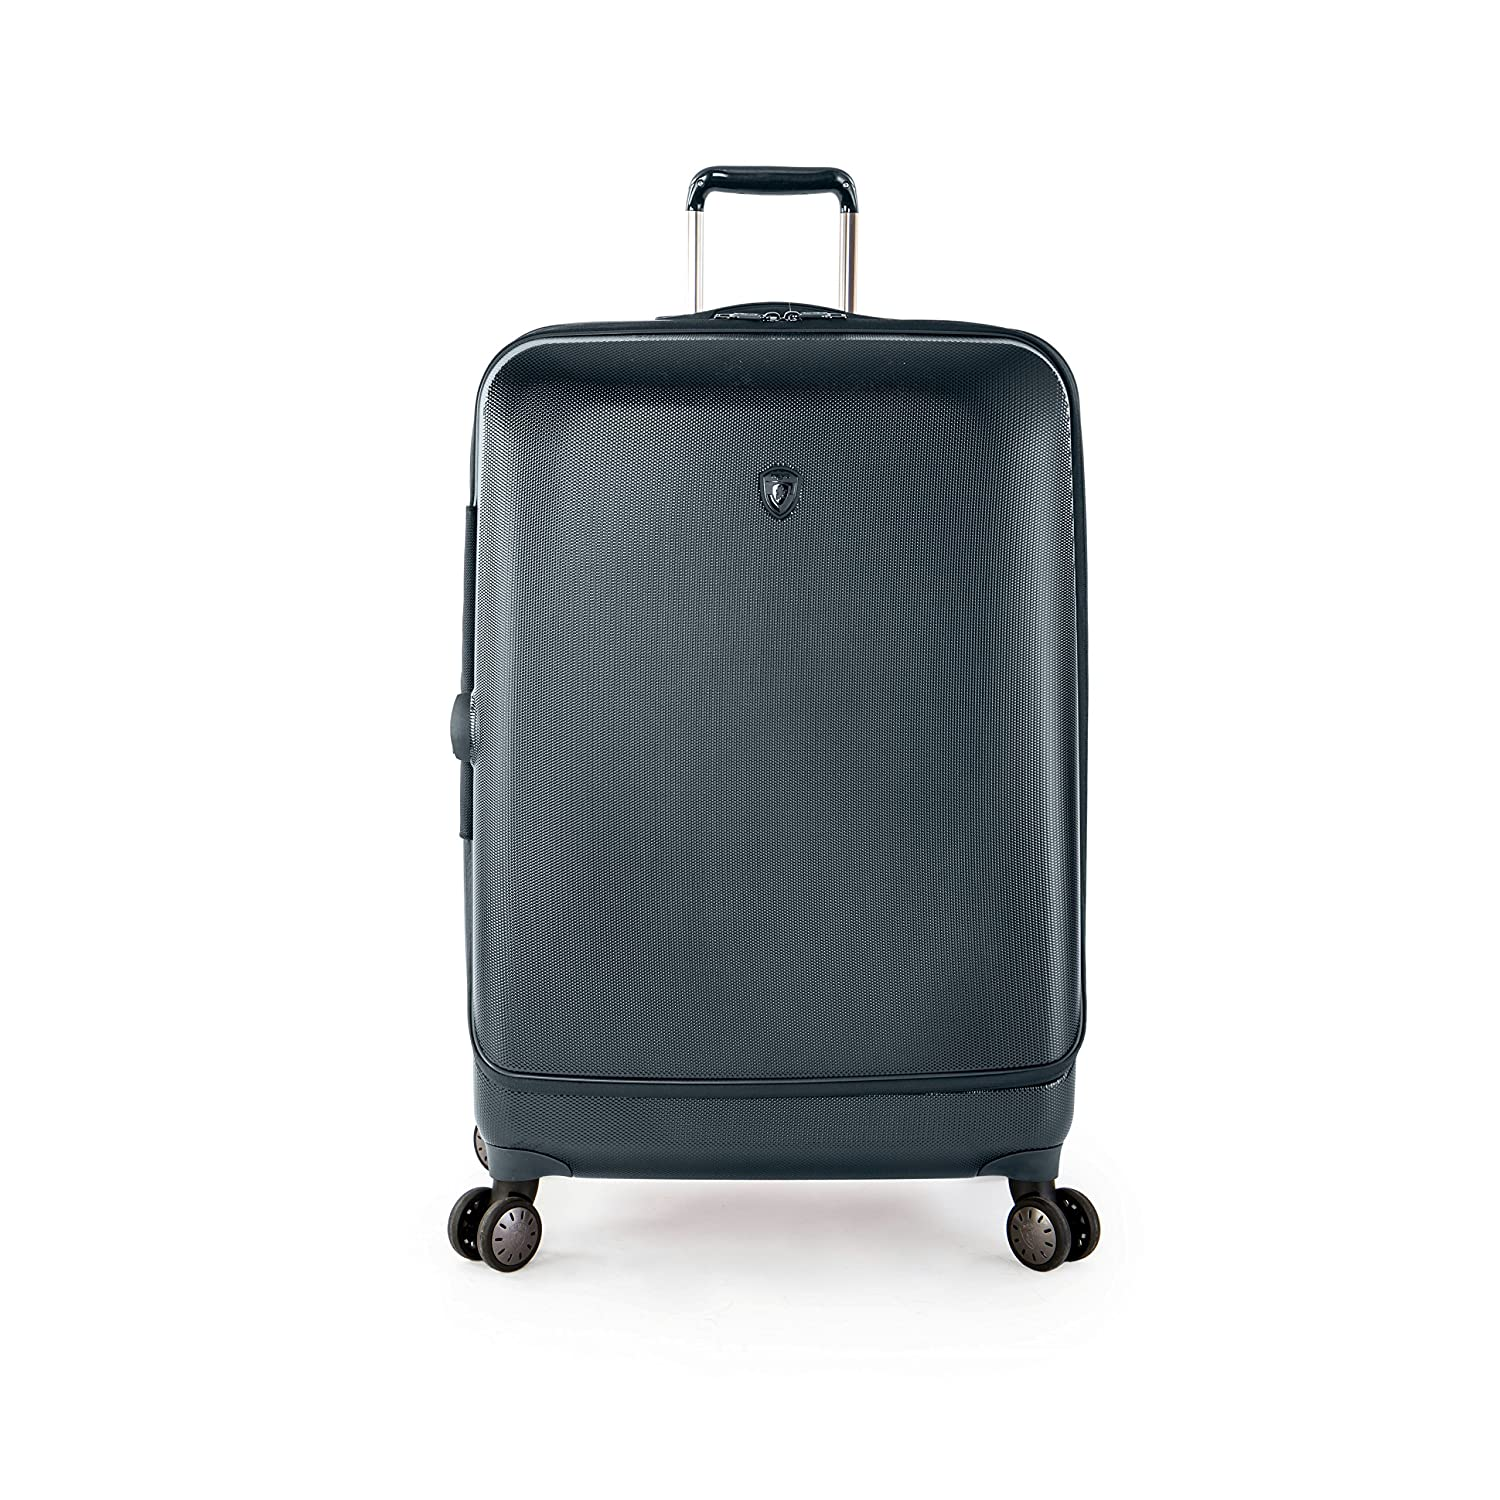 Heys – Crown Smart Portal Blau Trolley mit 4 Rollen Medium kaufen